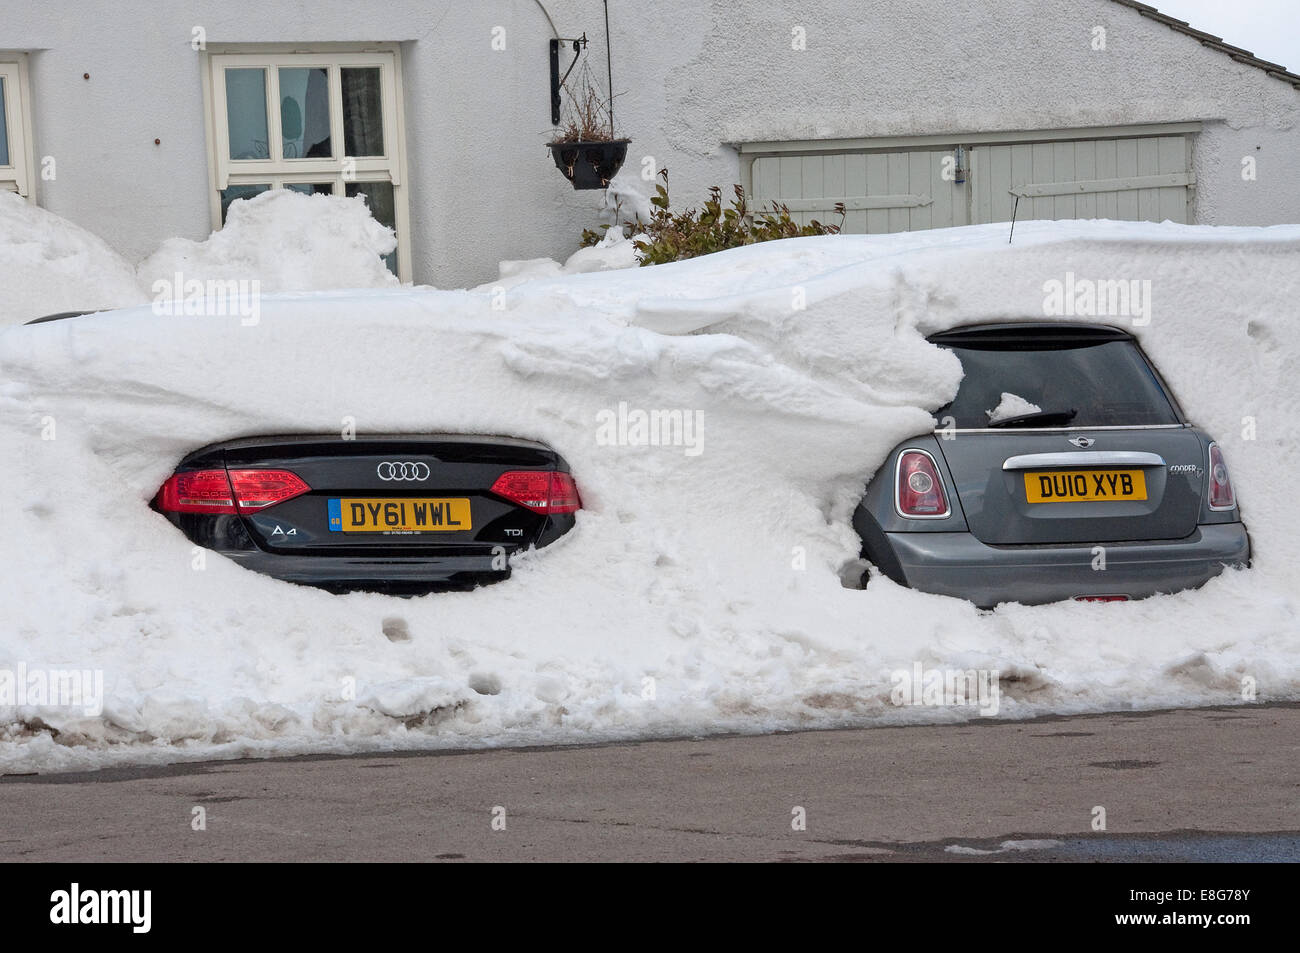 Cars buried in a snowdrift, Buxton, England - Stock Image